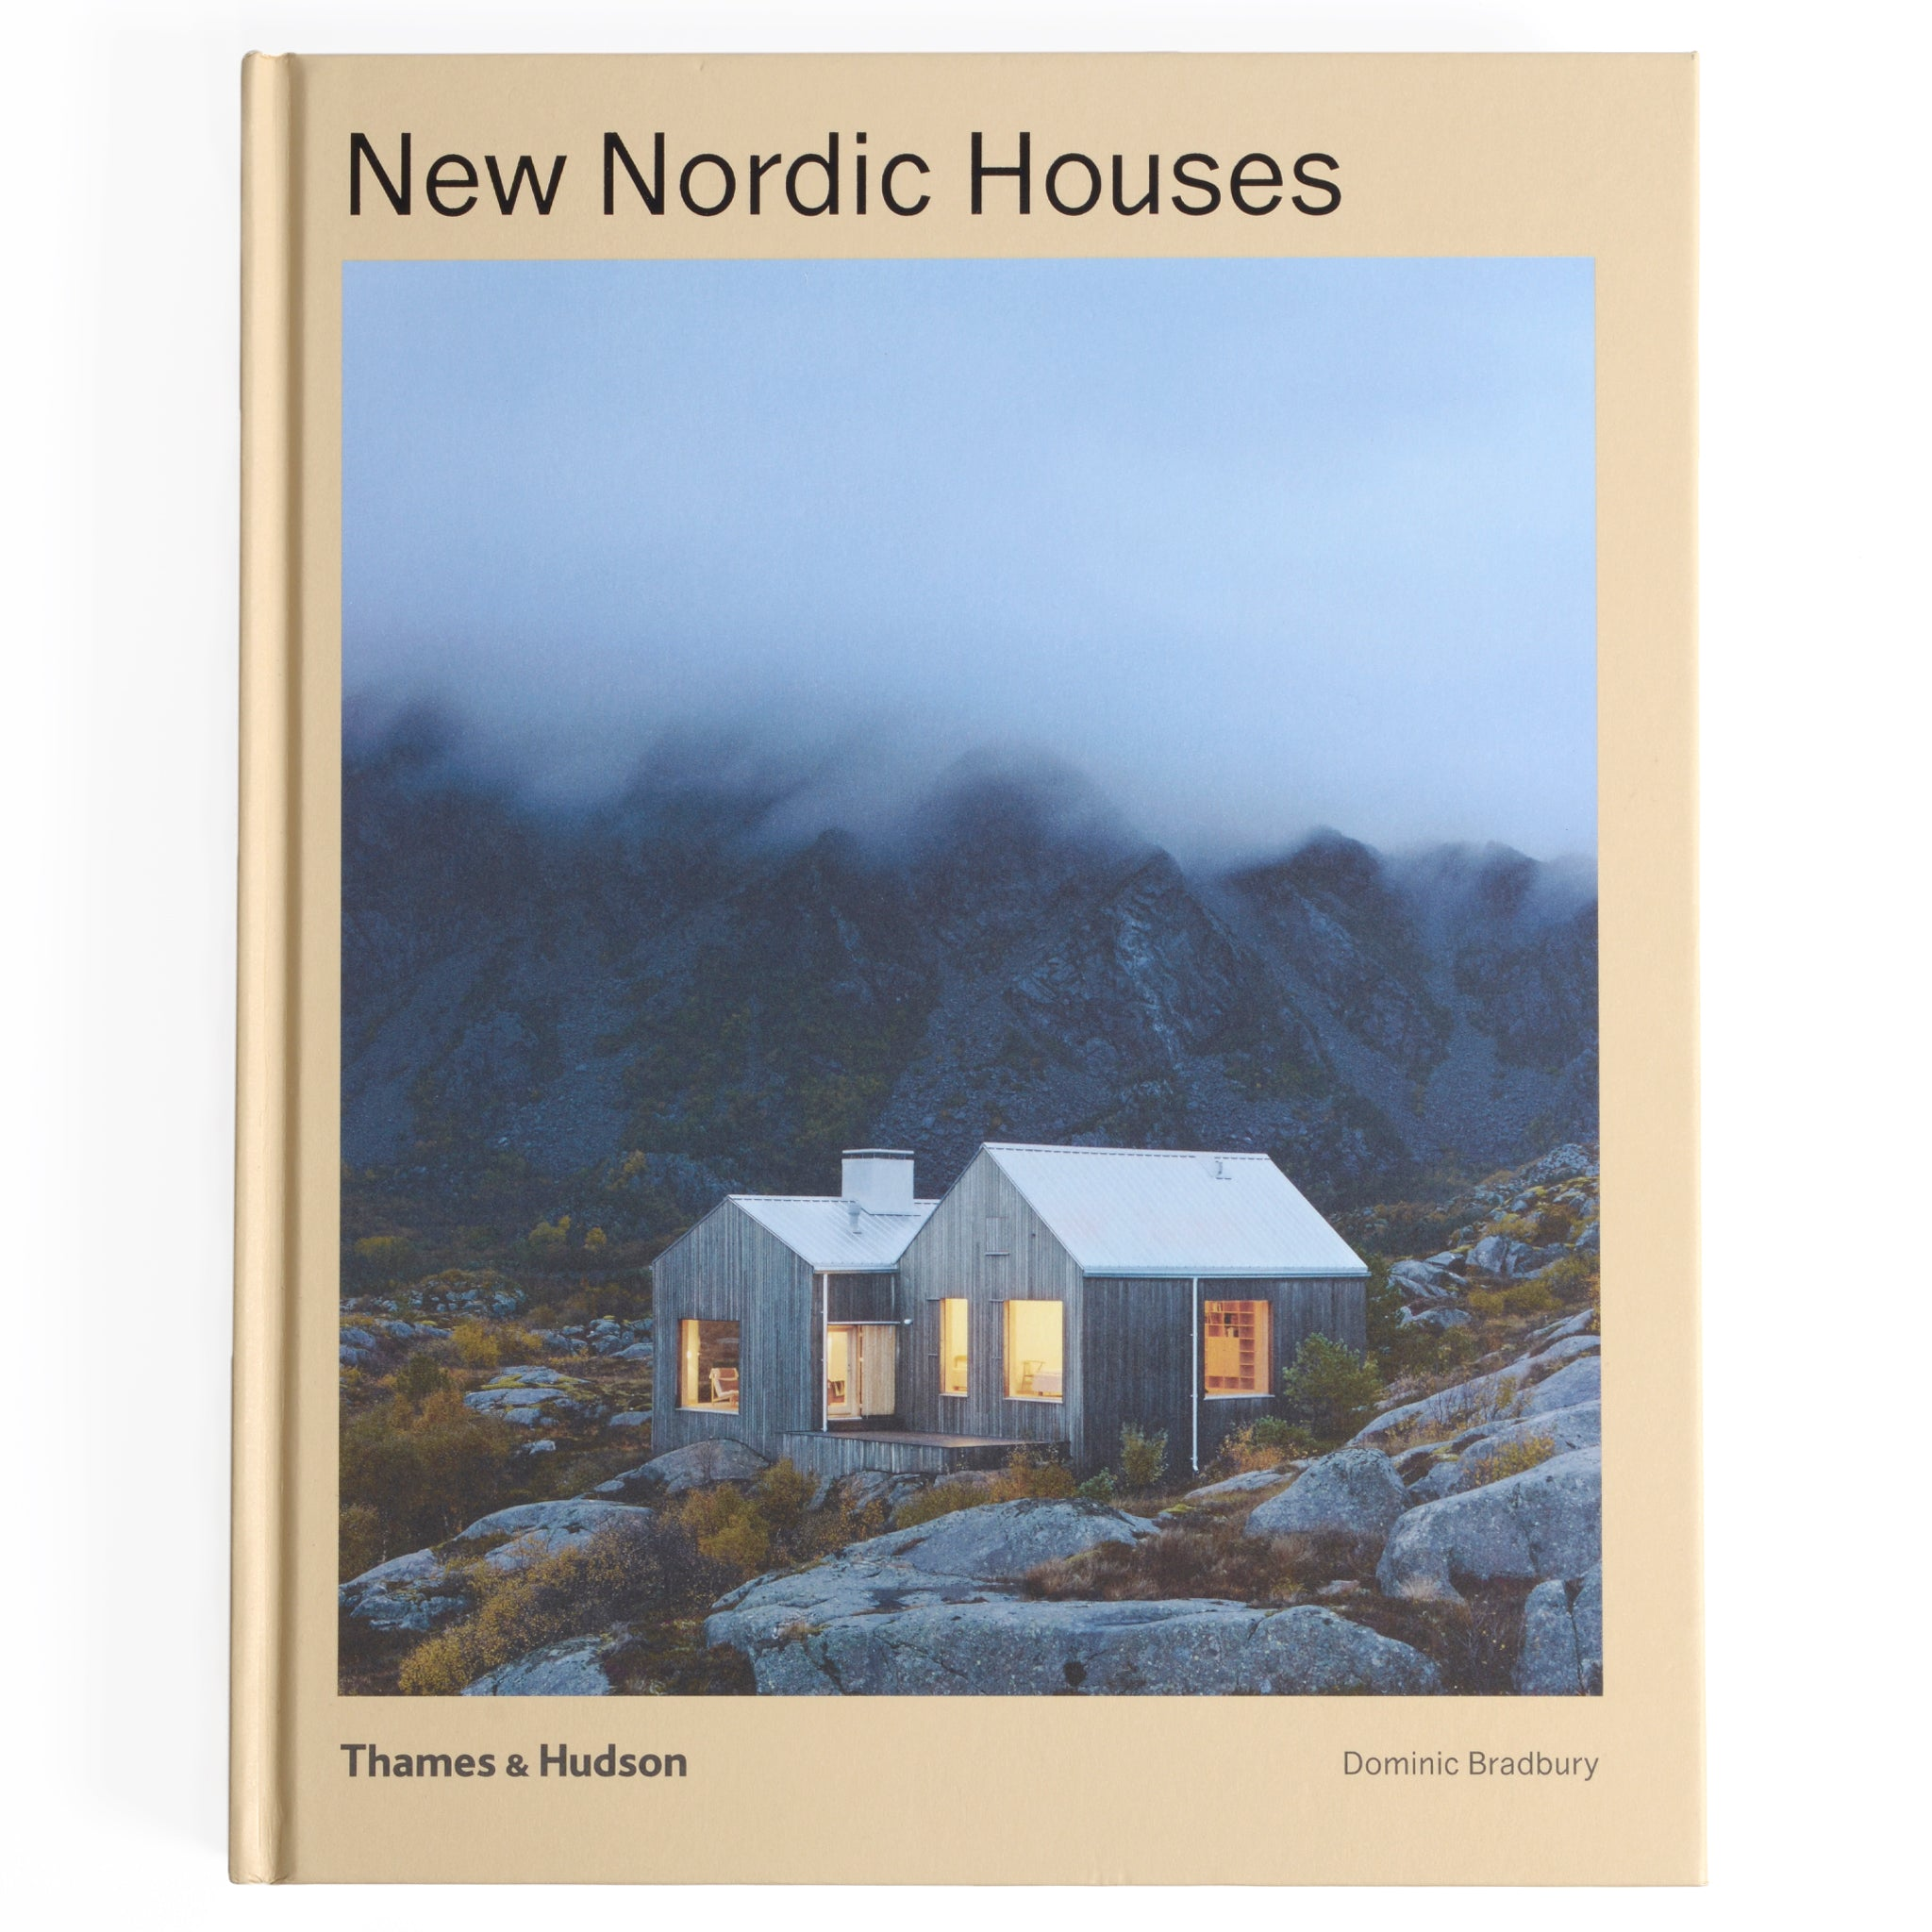 New Nordic Houses Image